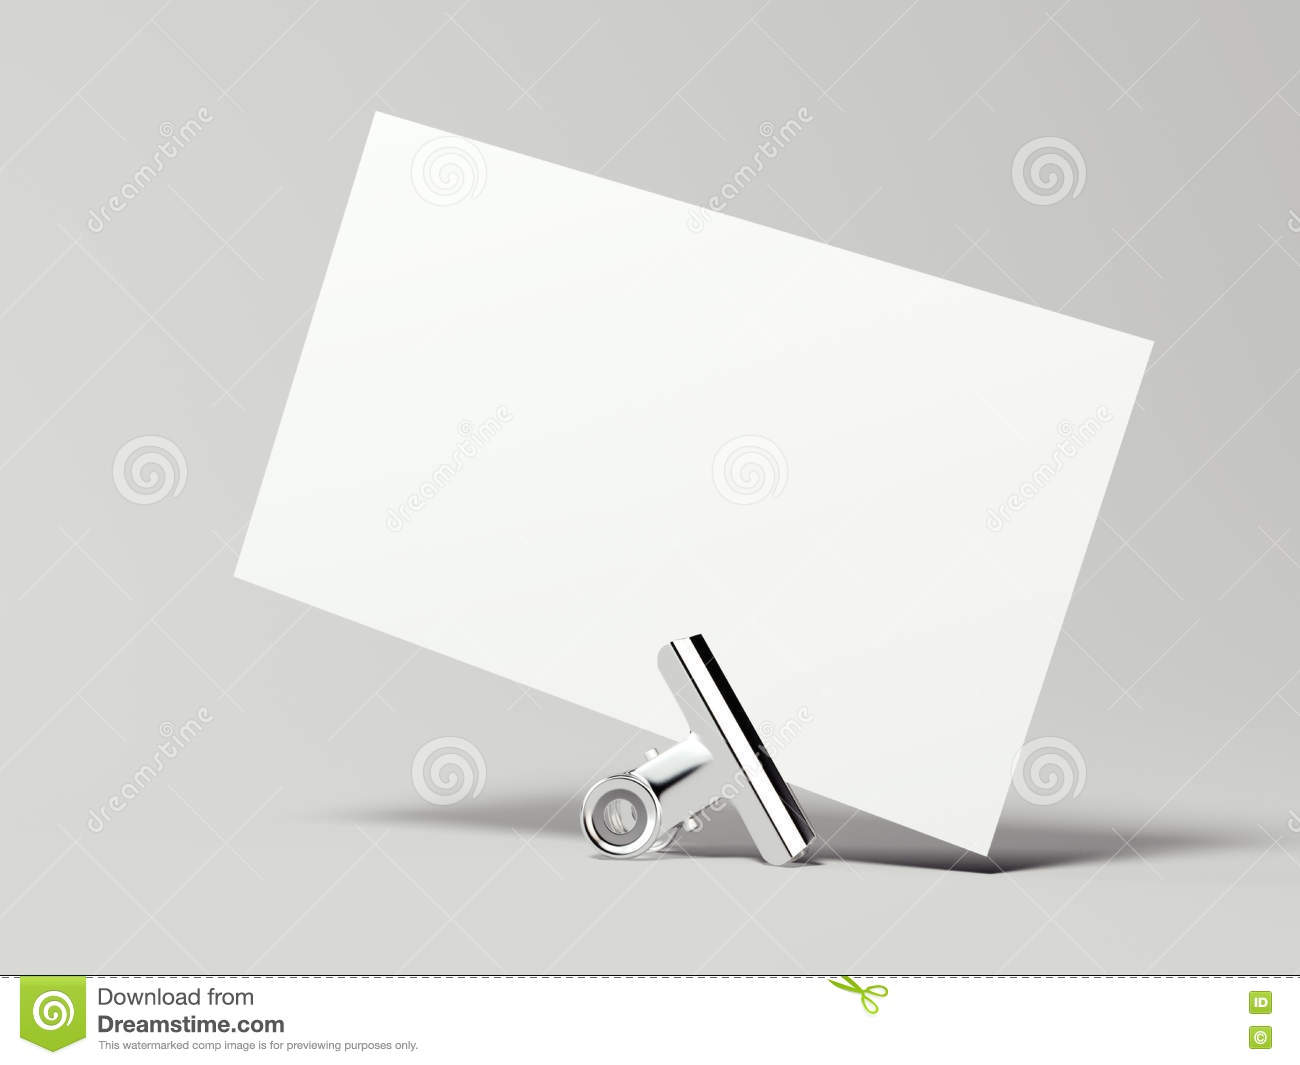 White Business Card With Silver Clip 3d Rendering Stock